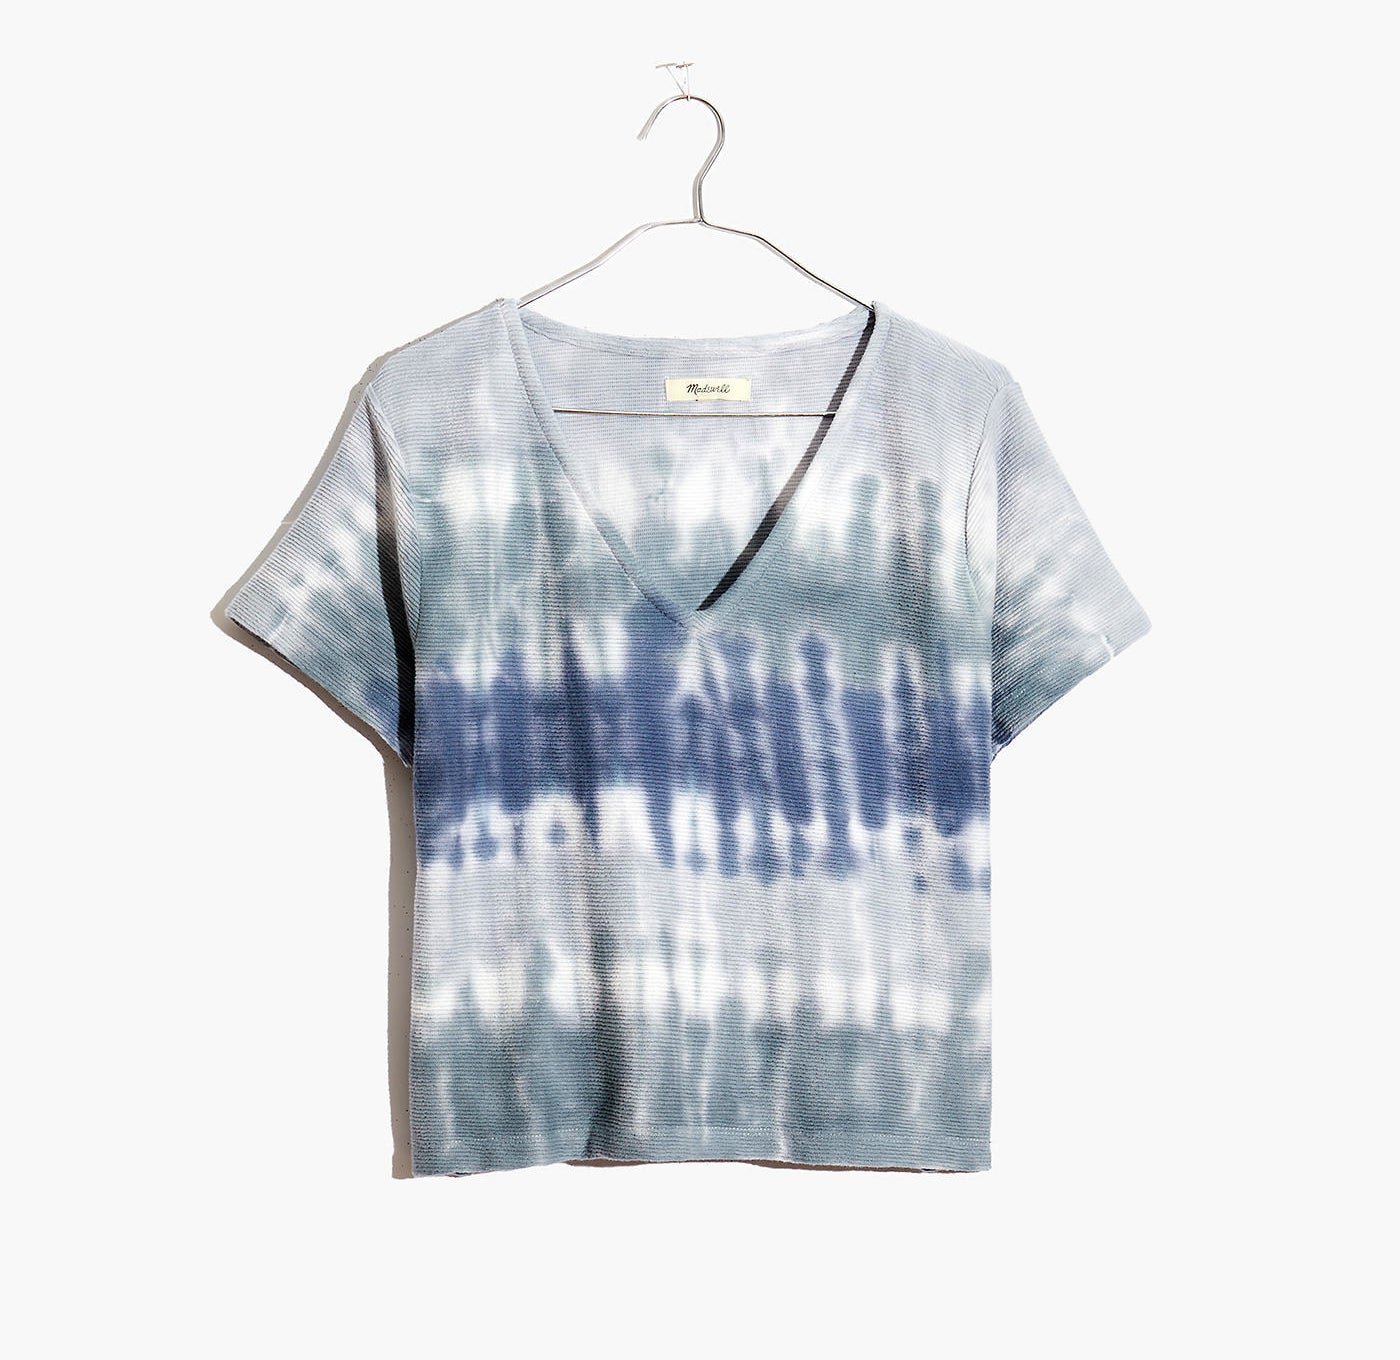 V-neck t-shirt with a blue-striped tie-dye design